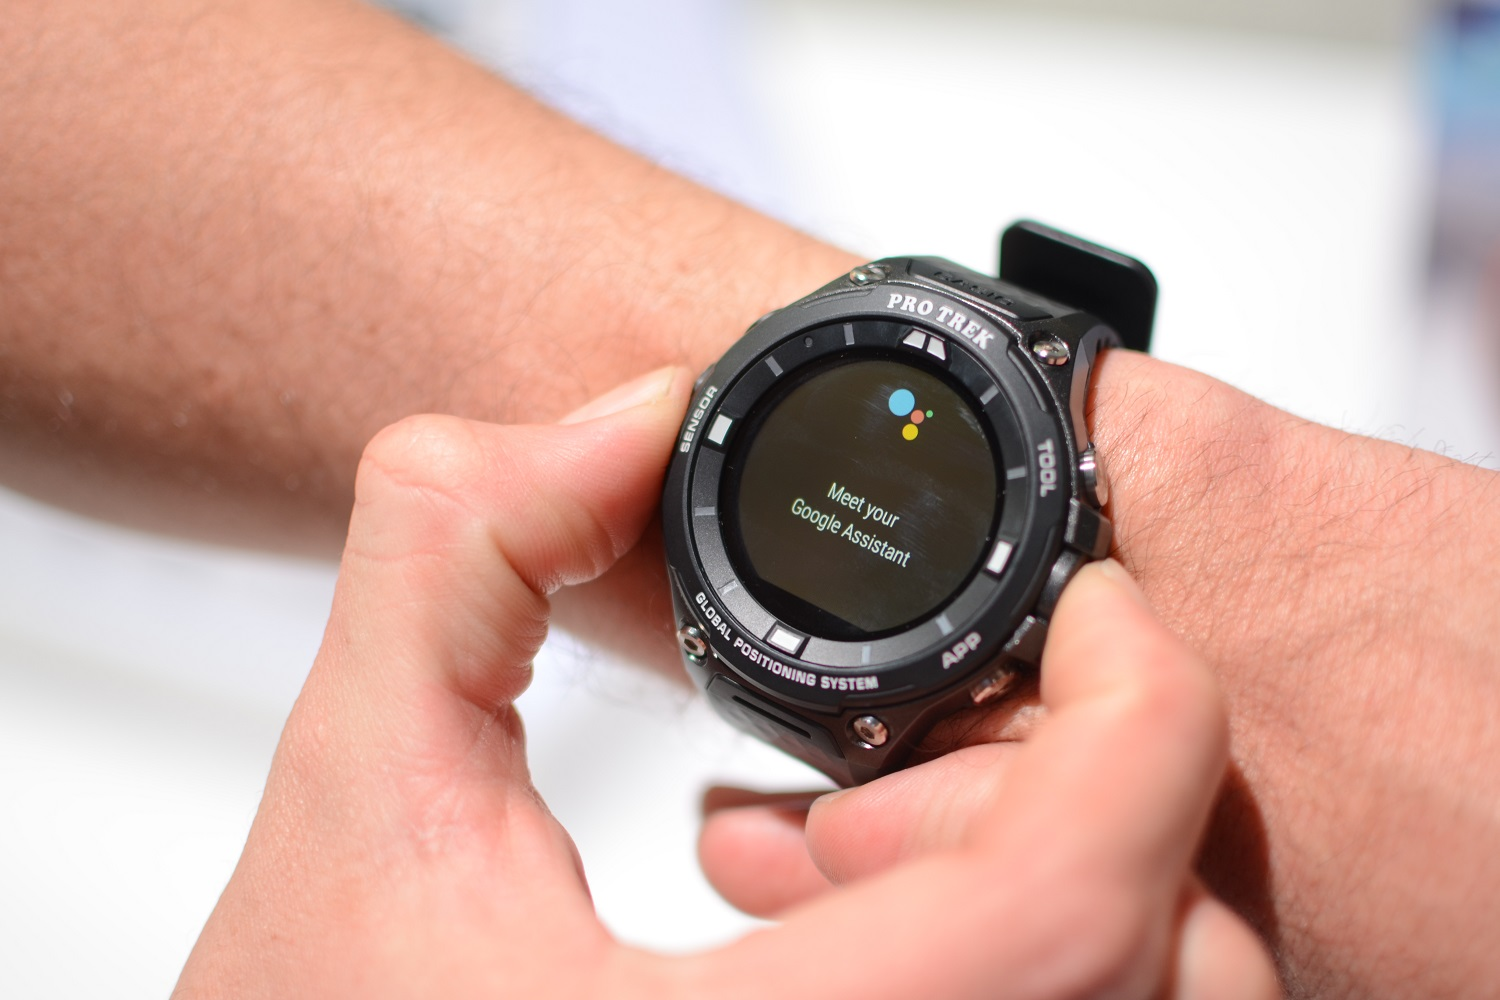 Casio WSD-F20 official with rugged design, Android Wear 2.0